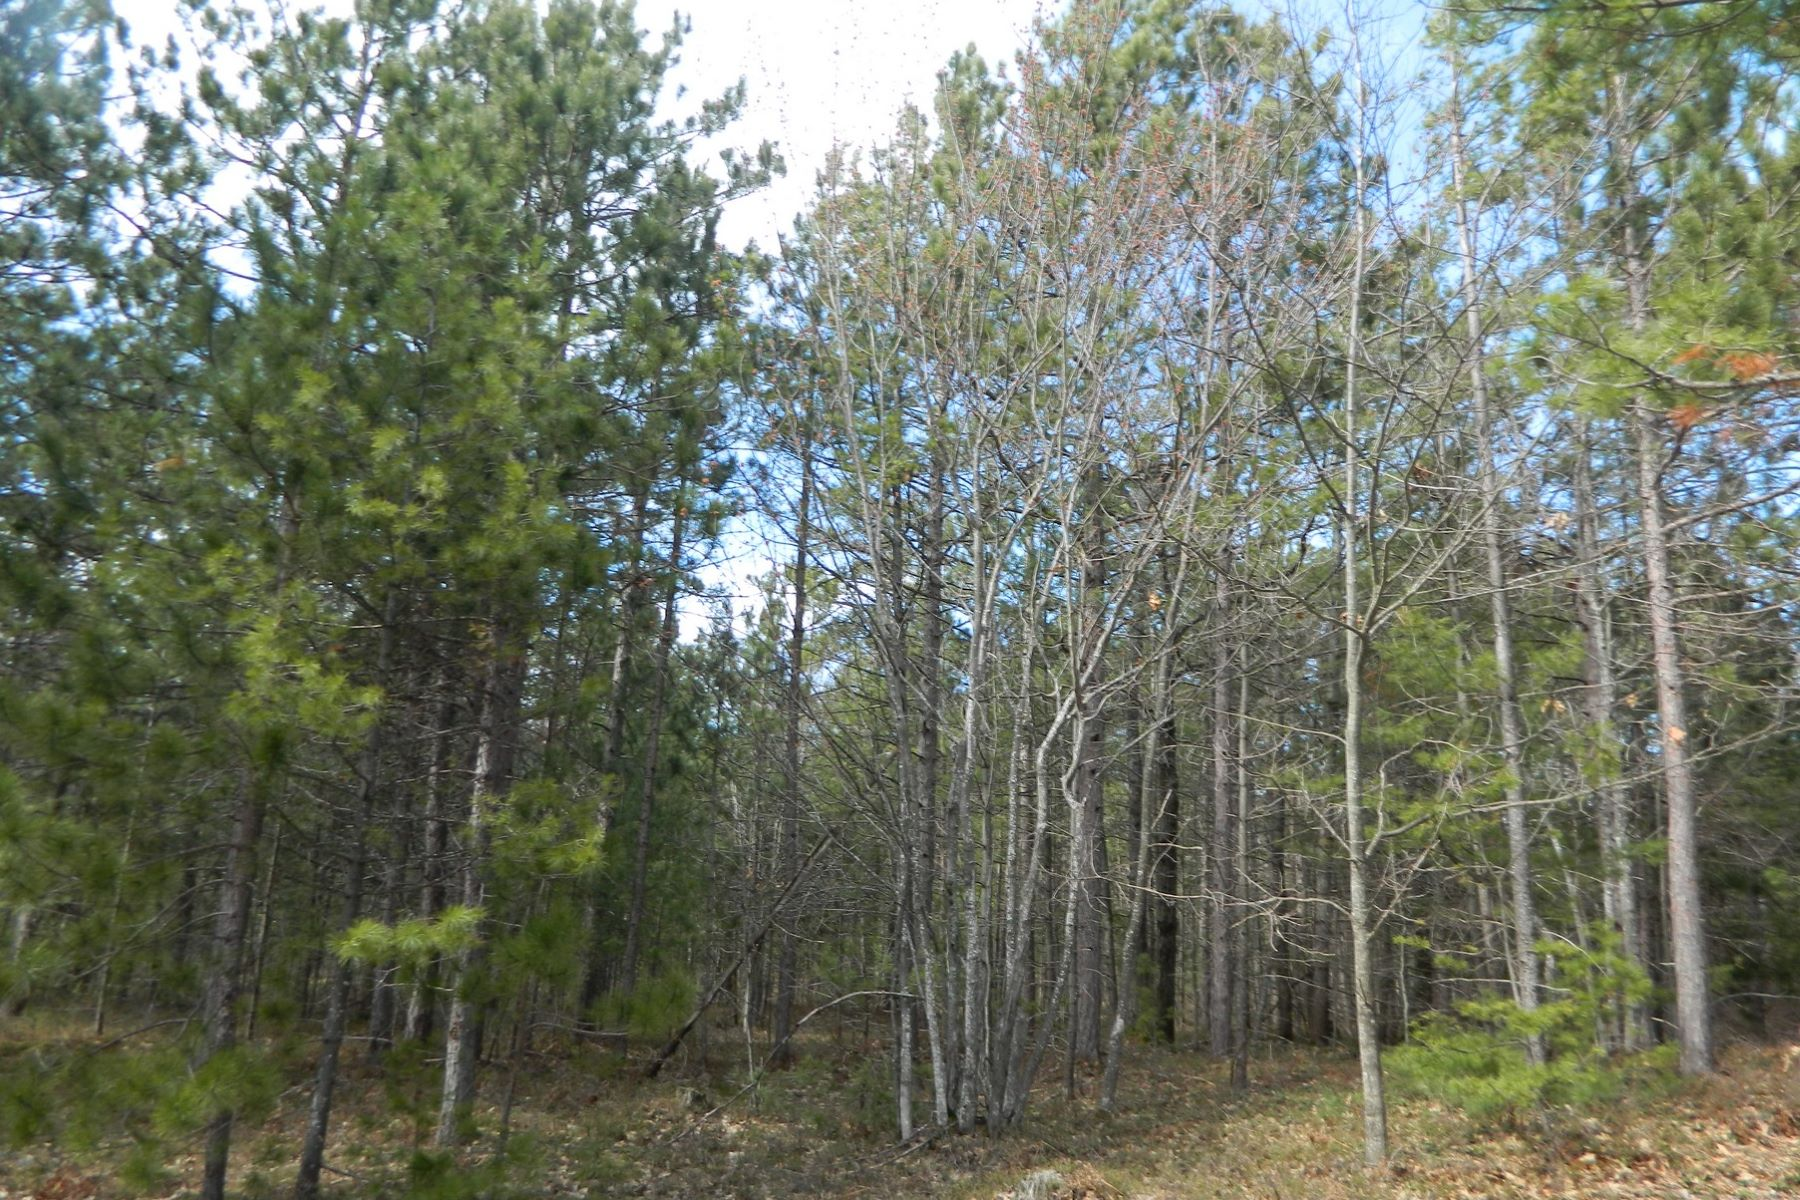 Land for Sale at Vacant Land near Sturgeon Bay Lake Shore Drive, Harbor Springs, Michigan, 49740 United States